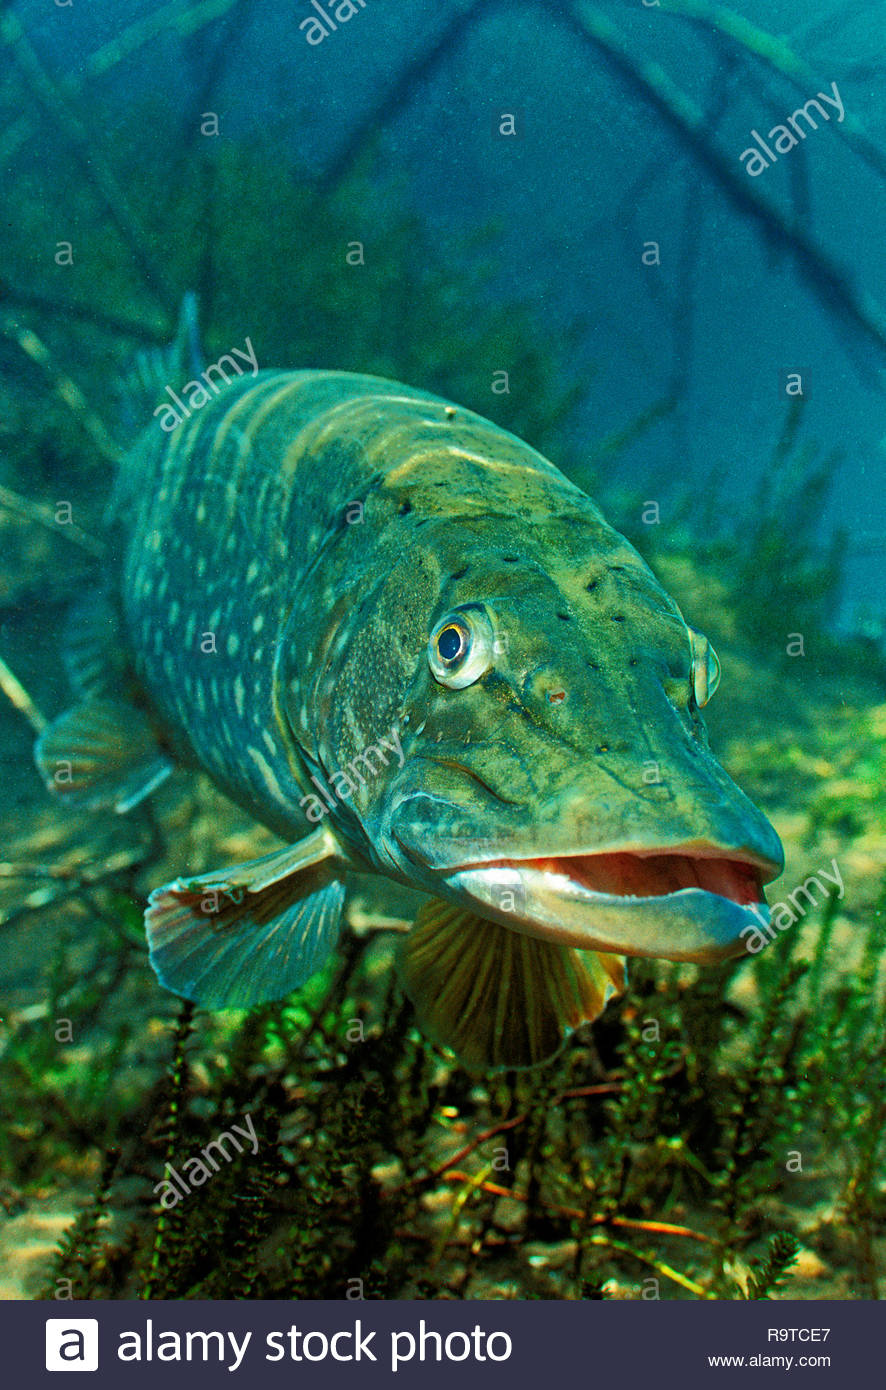 Northern pike (Esox lucius), lurking at lake bed for prey, Baden-Württemberg, Germany - Stock Image